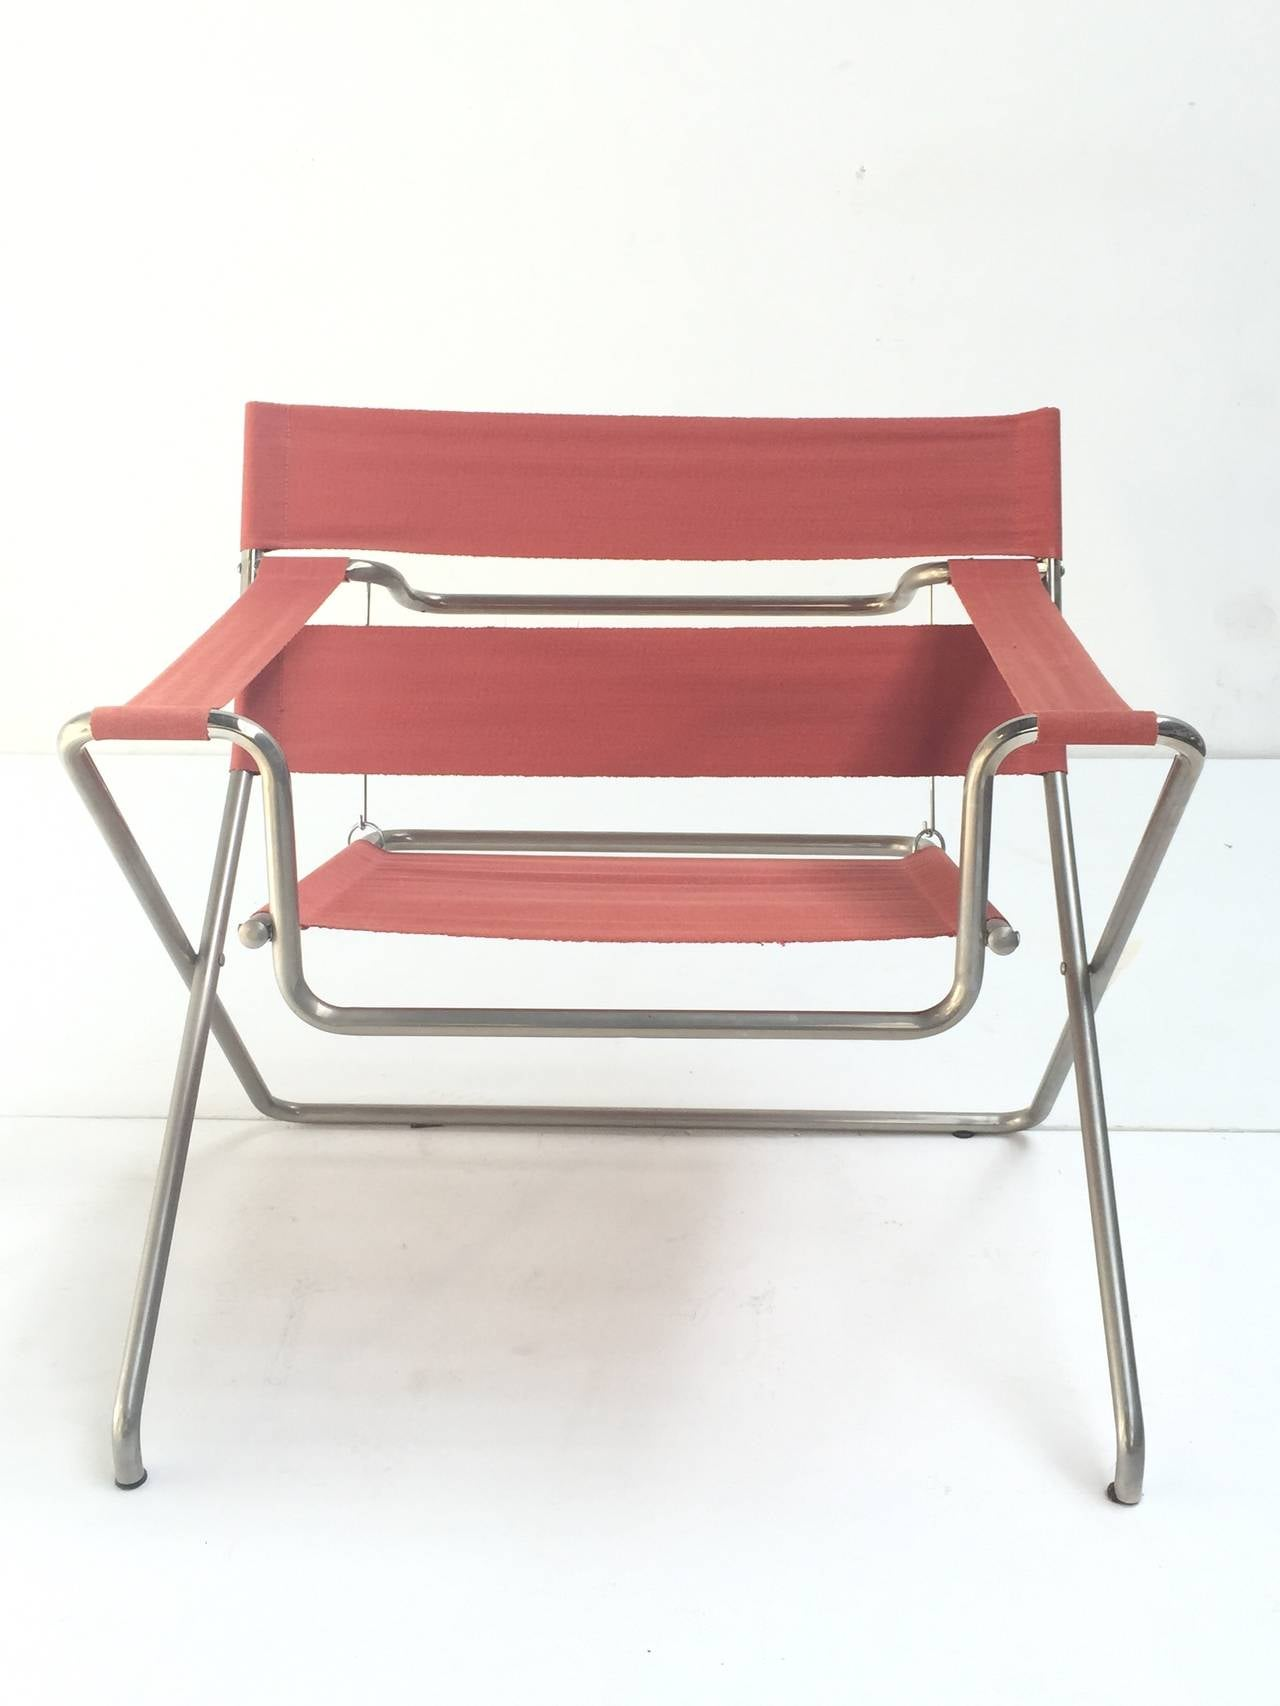 Marcel Breuer D4 Foldable Easy Chair Purchased in 1968 Tecta